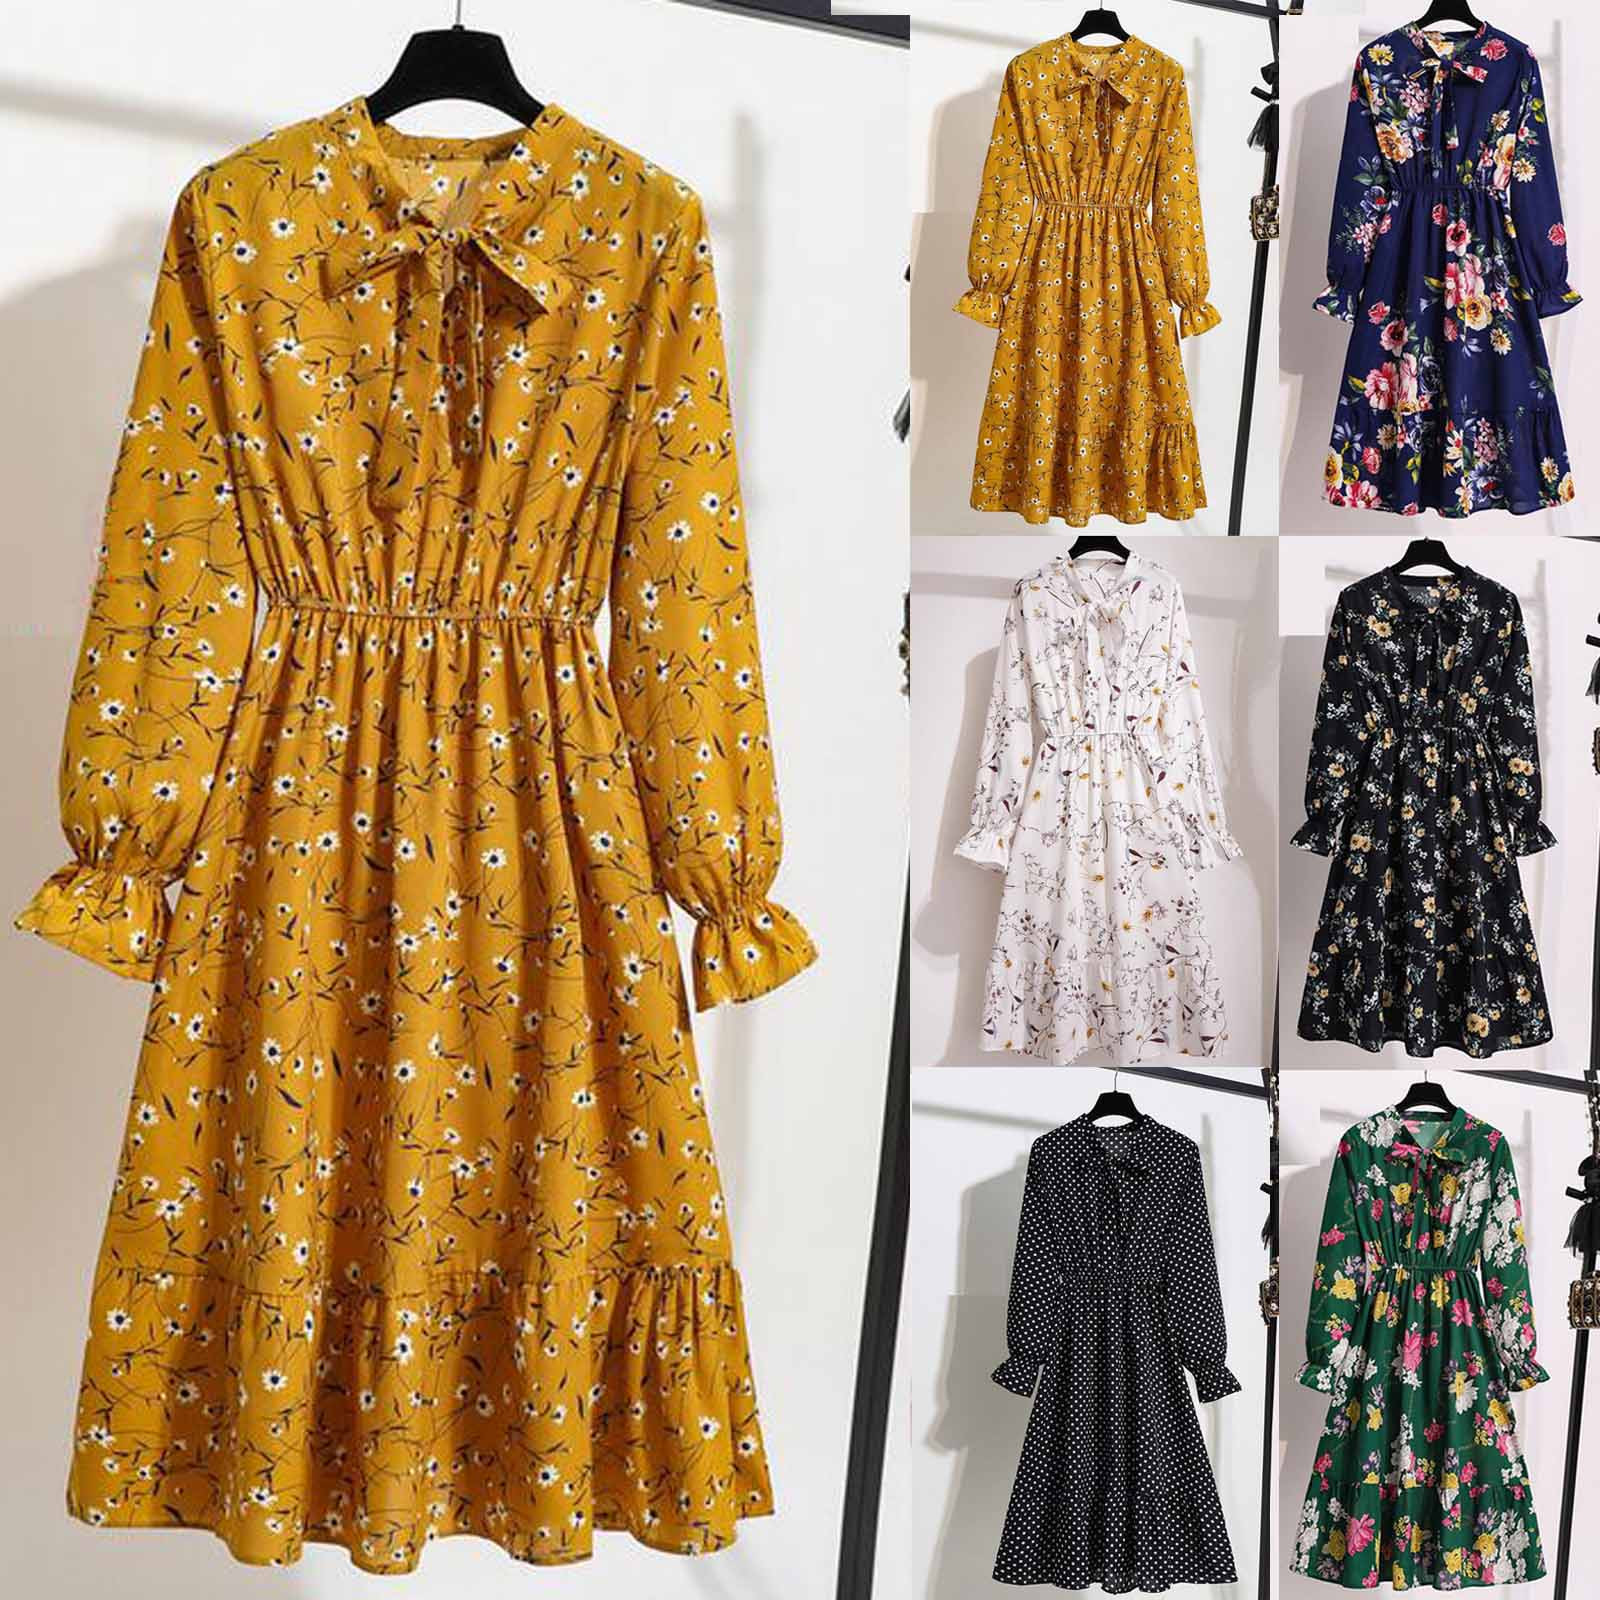 F# Summer Bohe Elegant Woman Dress Floral Chiffon Puff Sleeve Printing Casual Party Vintage Dresses Femme Robe Women Clothes